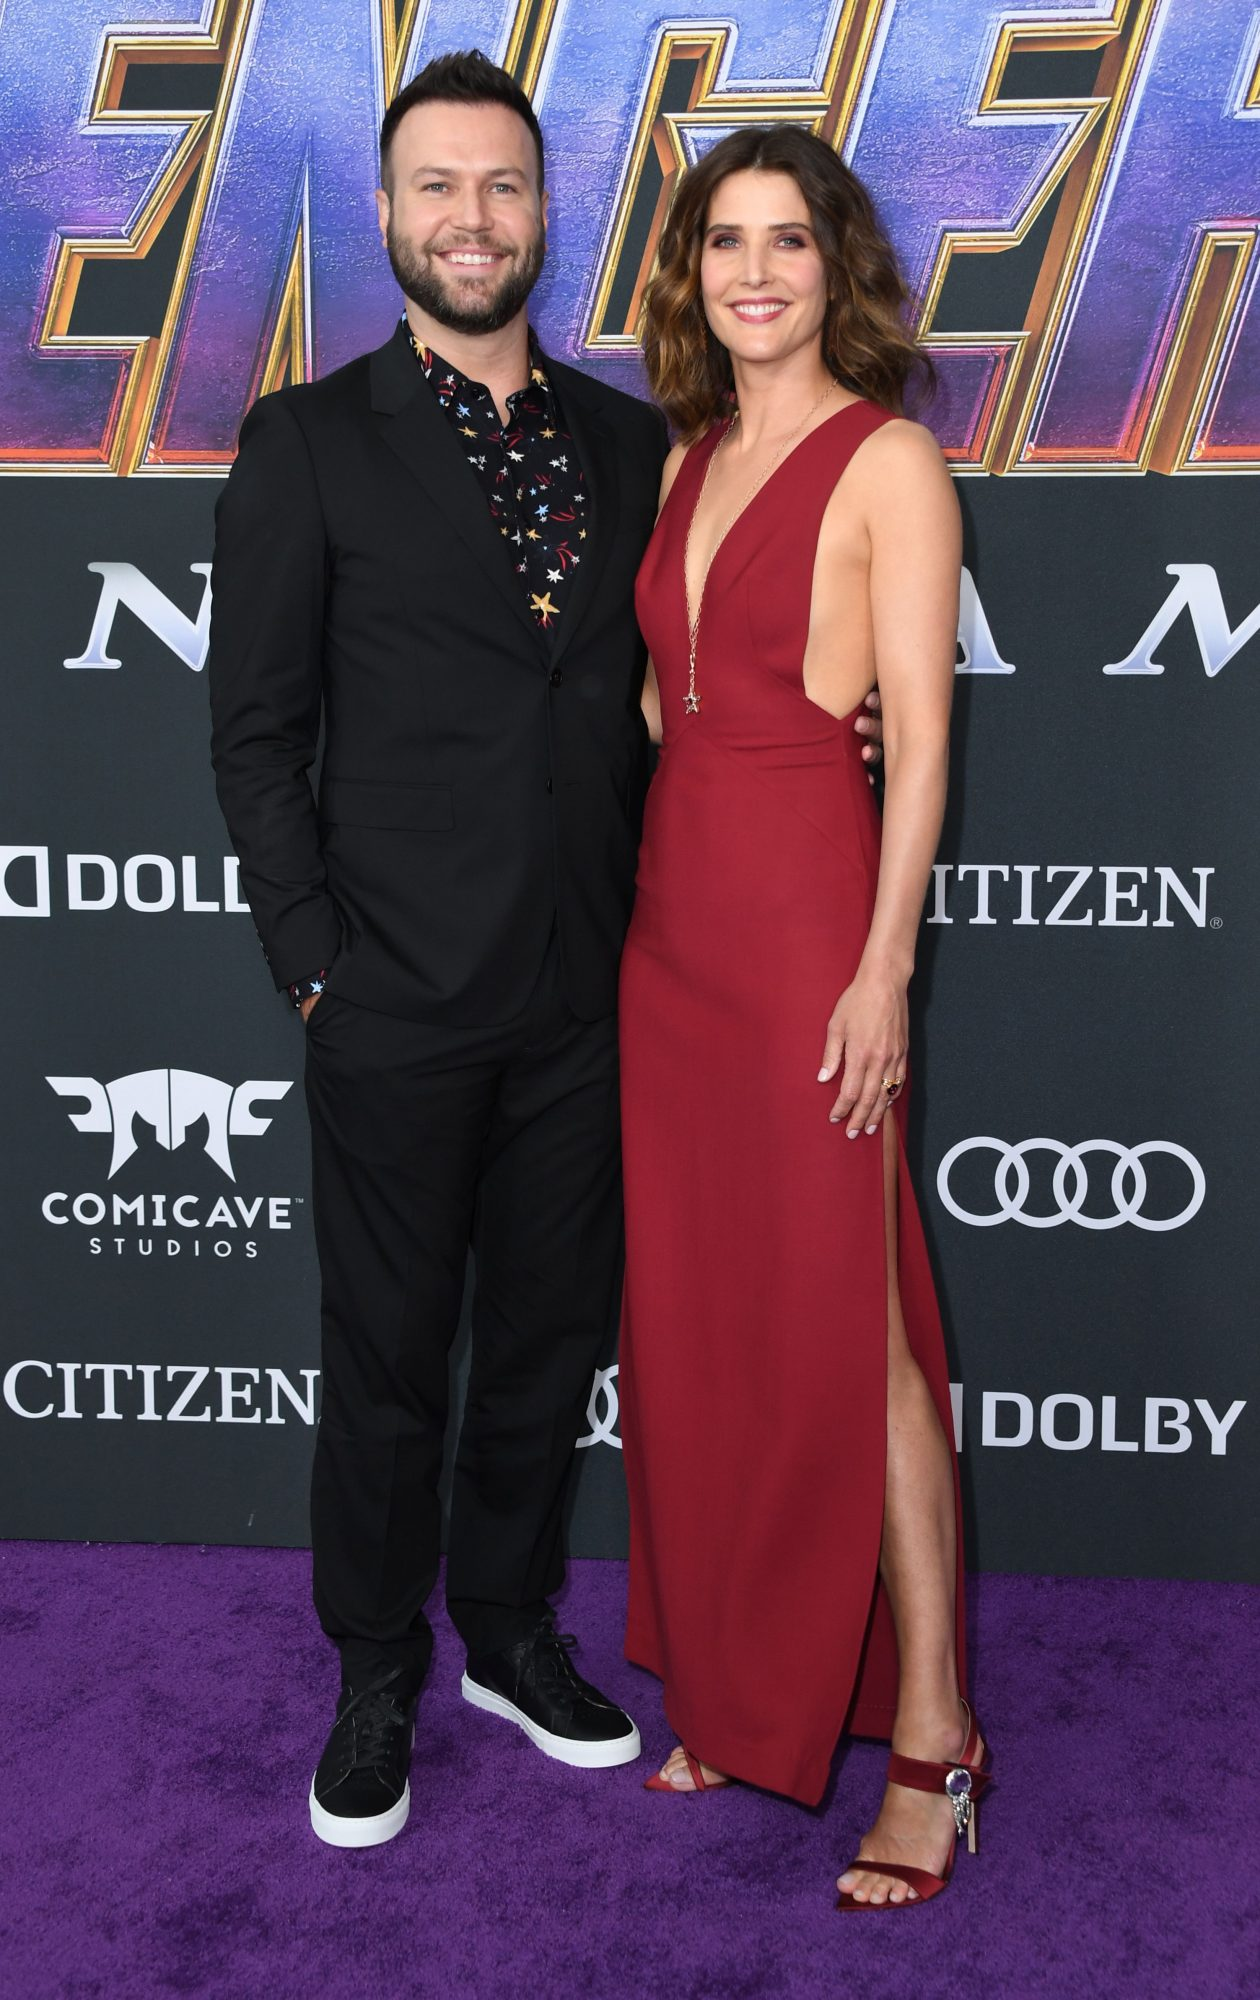 """Canadian actress Cobie Smulders and her husband US actor Taran Killam arrive for the World premiere of Marvel Studios' """"Avengers: Endgame"""" at the Los Angeles Convention Center on April 22, 2019 in Los Angeles. (Photo by VALERIE MACON/AFP/Getty Images)"""